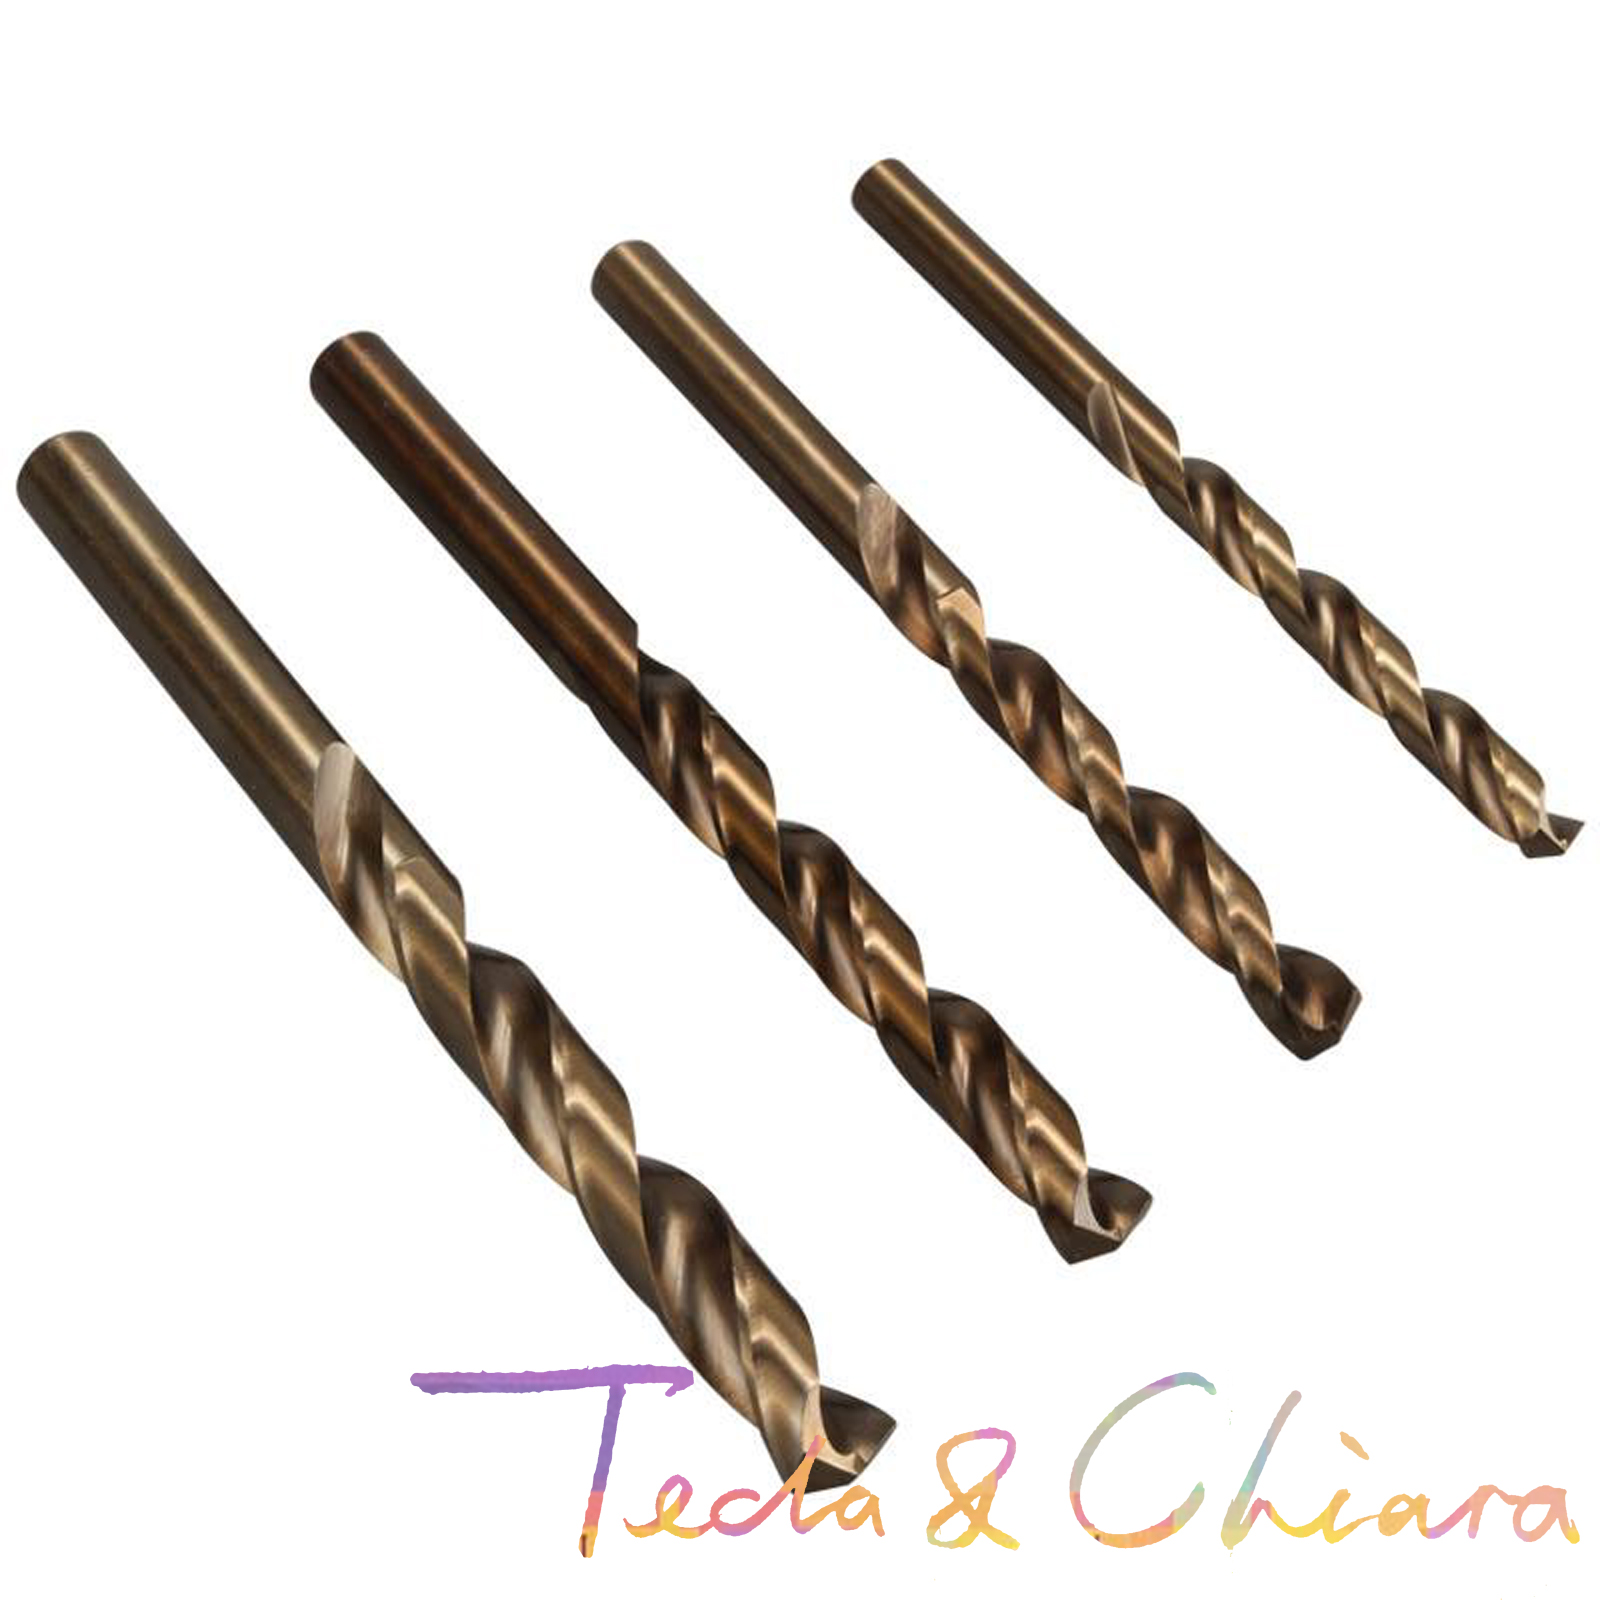 5 5.0 5.1 5.2 5.3 5.4 5.5 5.6 5.7 5.8 5.9 mm HSS-CO M35 Cobalt Steel Straight Shank Twist Drill Bits For Stainless Steel5 5.0 5.1 5.2 5.3 5.4 5.5 5.6 5.7 5.8 5.9 mm HSS-CO M35 Cobalt Steel Straight Shank Twist Drill Bits For Stainless Steel